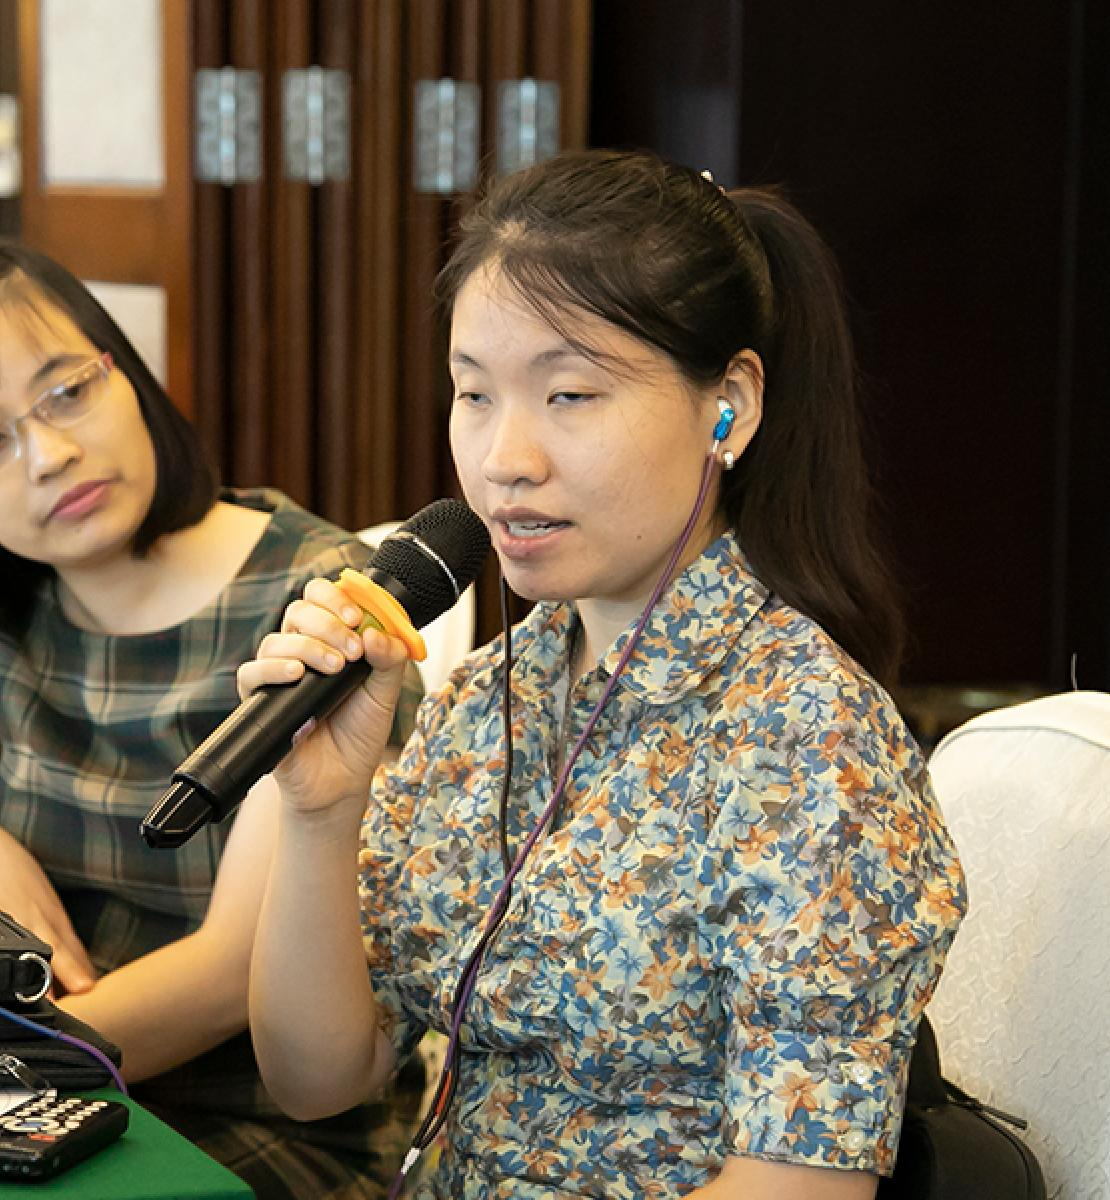 Banner shows Huong Dao Thu speaking into a microphone at a table with two women beside her.